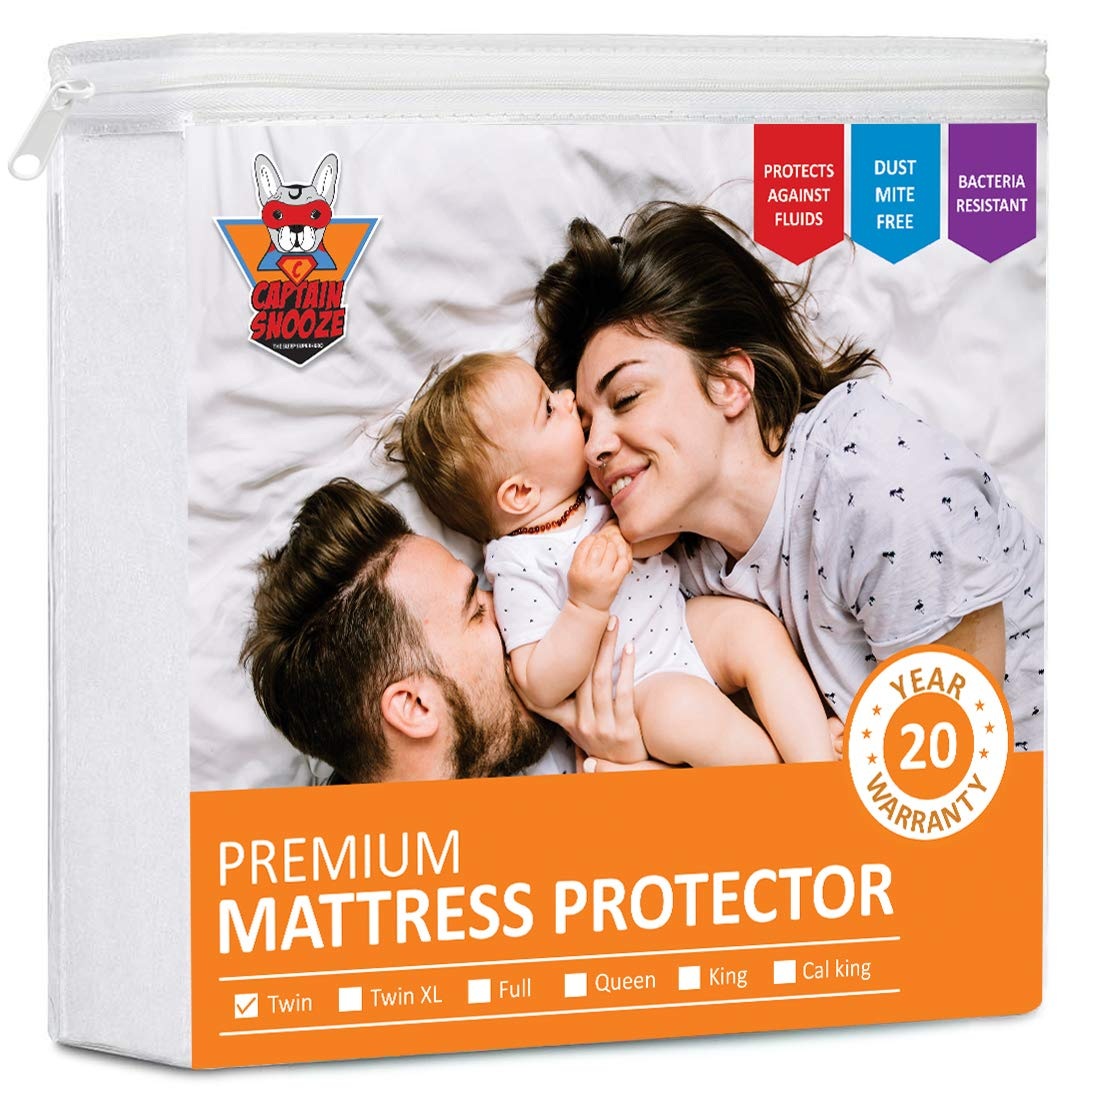 CAPTAIN SNOOZE Mattress Protector Twin Size Waterproof, Fitted Sheet Mattress Protector Upto 18 inches deep Pocket, Cotton Terry Surface, Vinyl Free, Premium Twin Mattress Protector